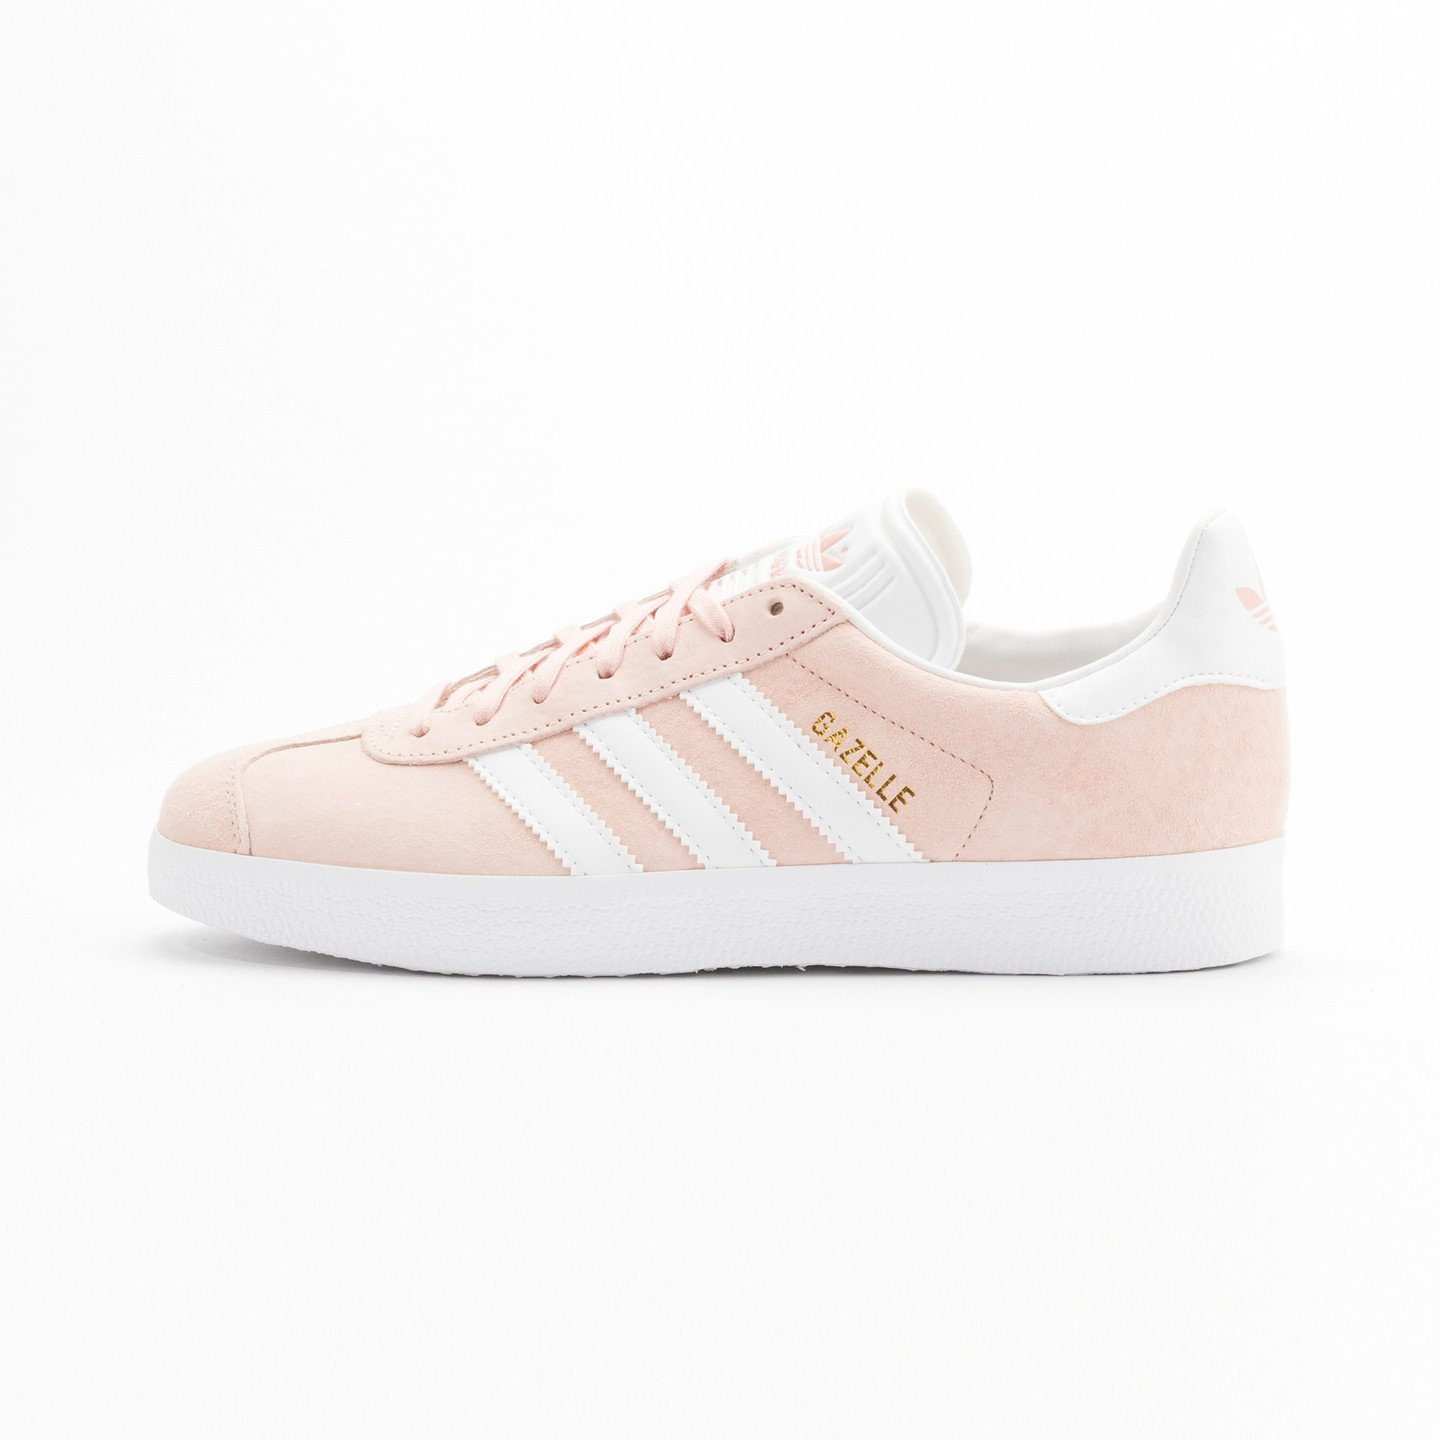 Adidas Gazelle  Vapor Pink / White / Gold Metallic BB5472-37.33